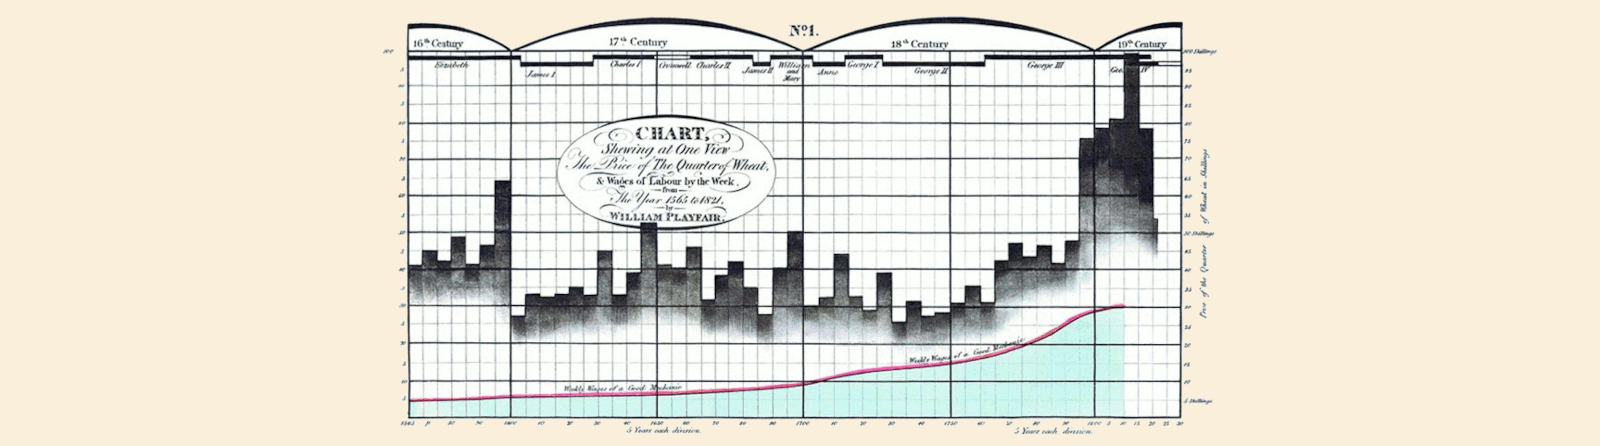 Excel Charts meet William Playfair